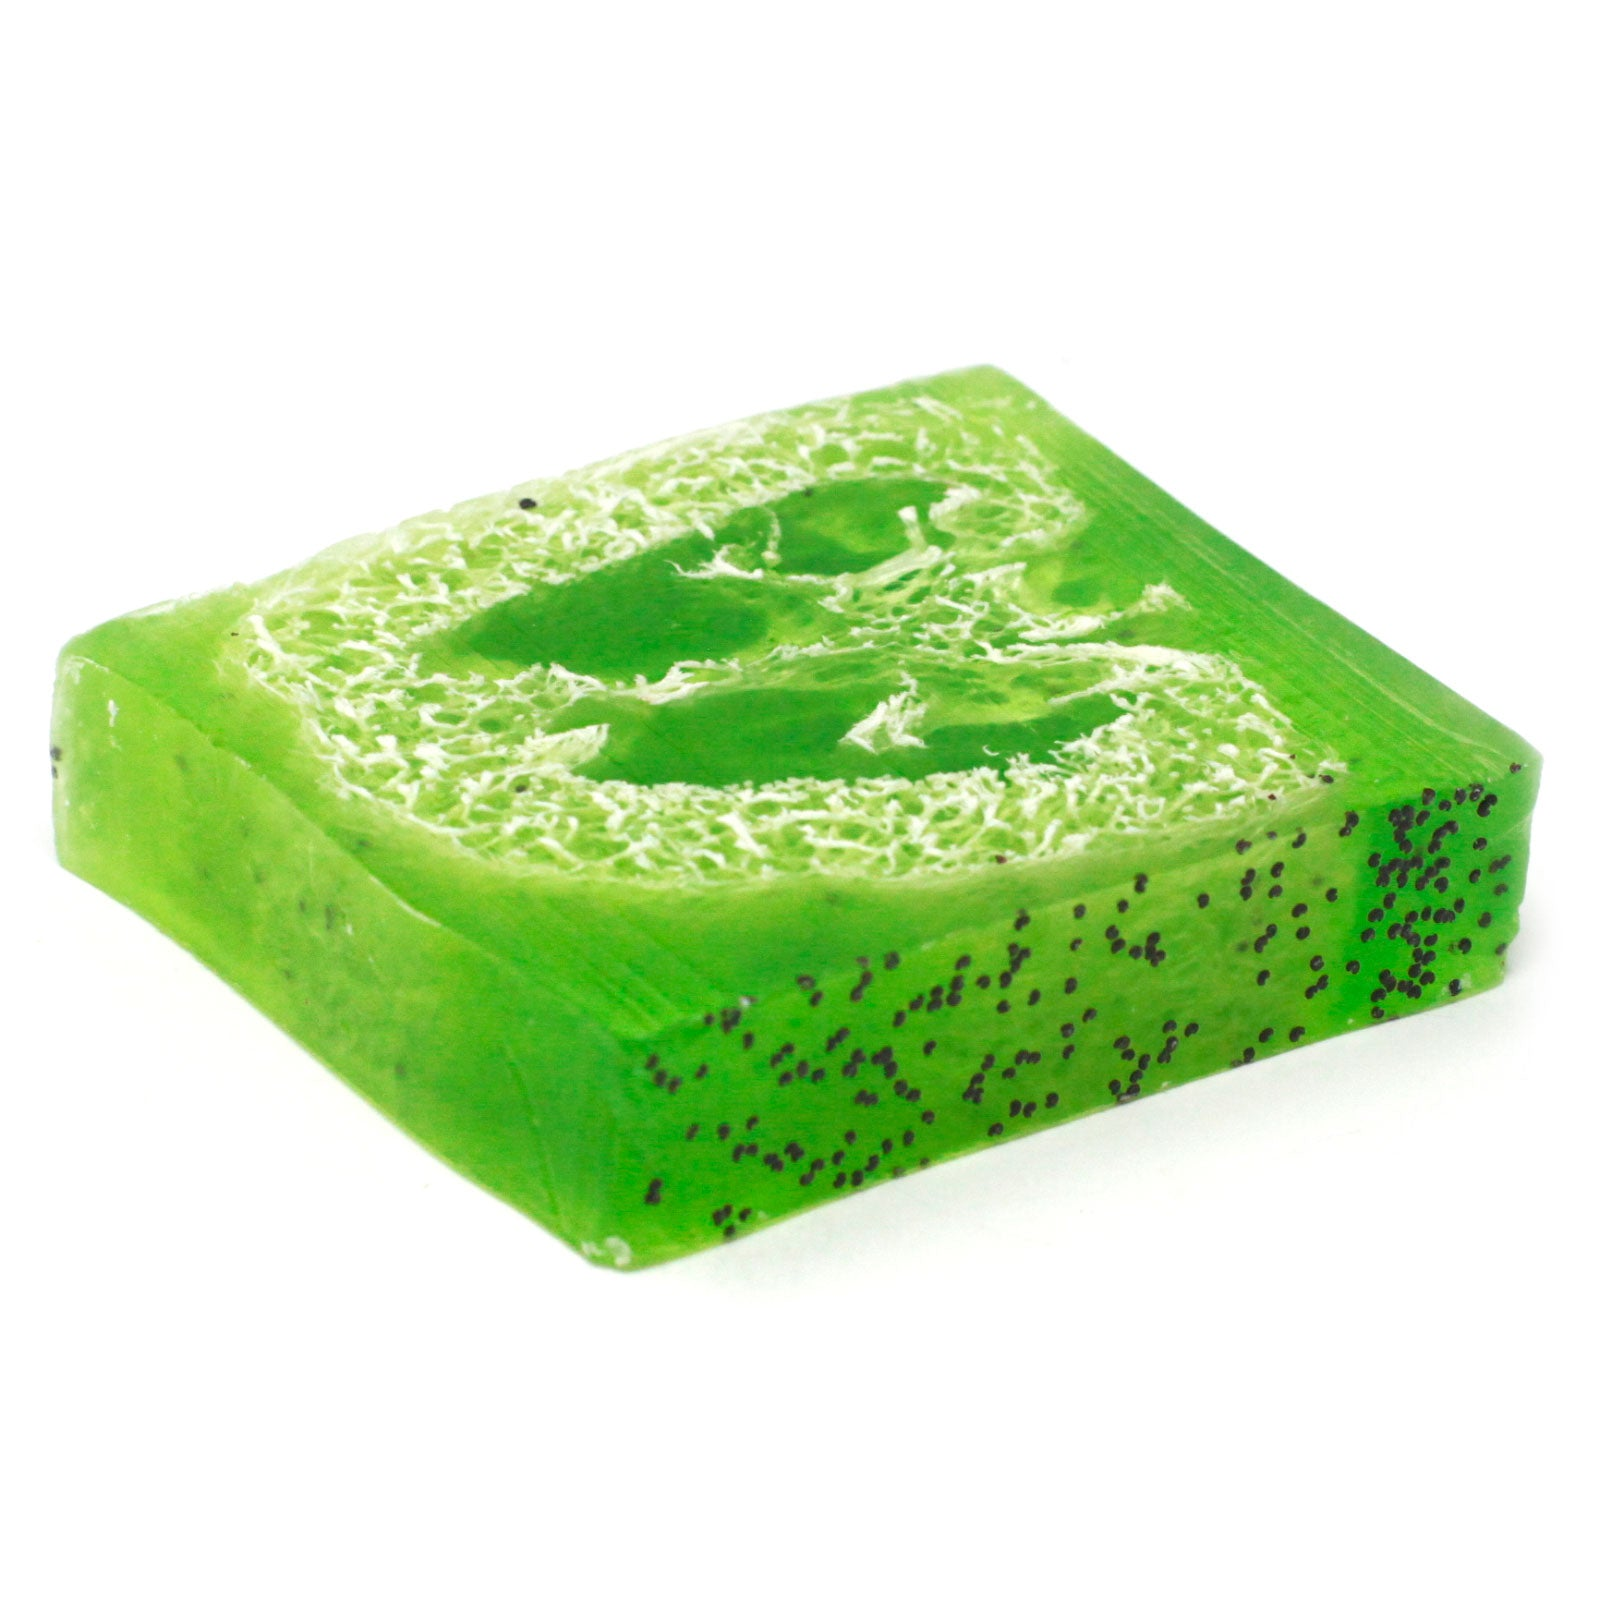 Loofah Soap Loaf - Peppermint & Herb Scrub